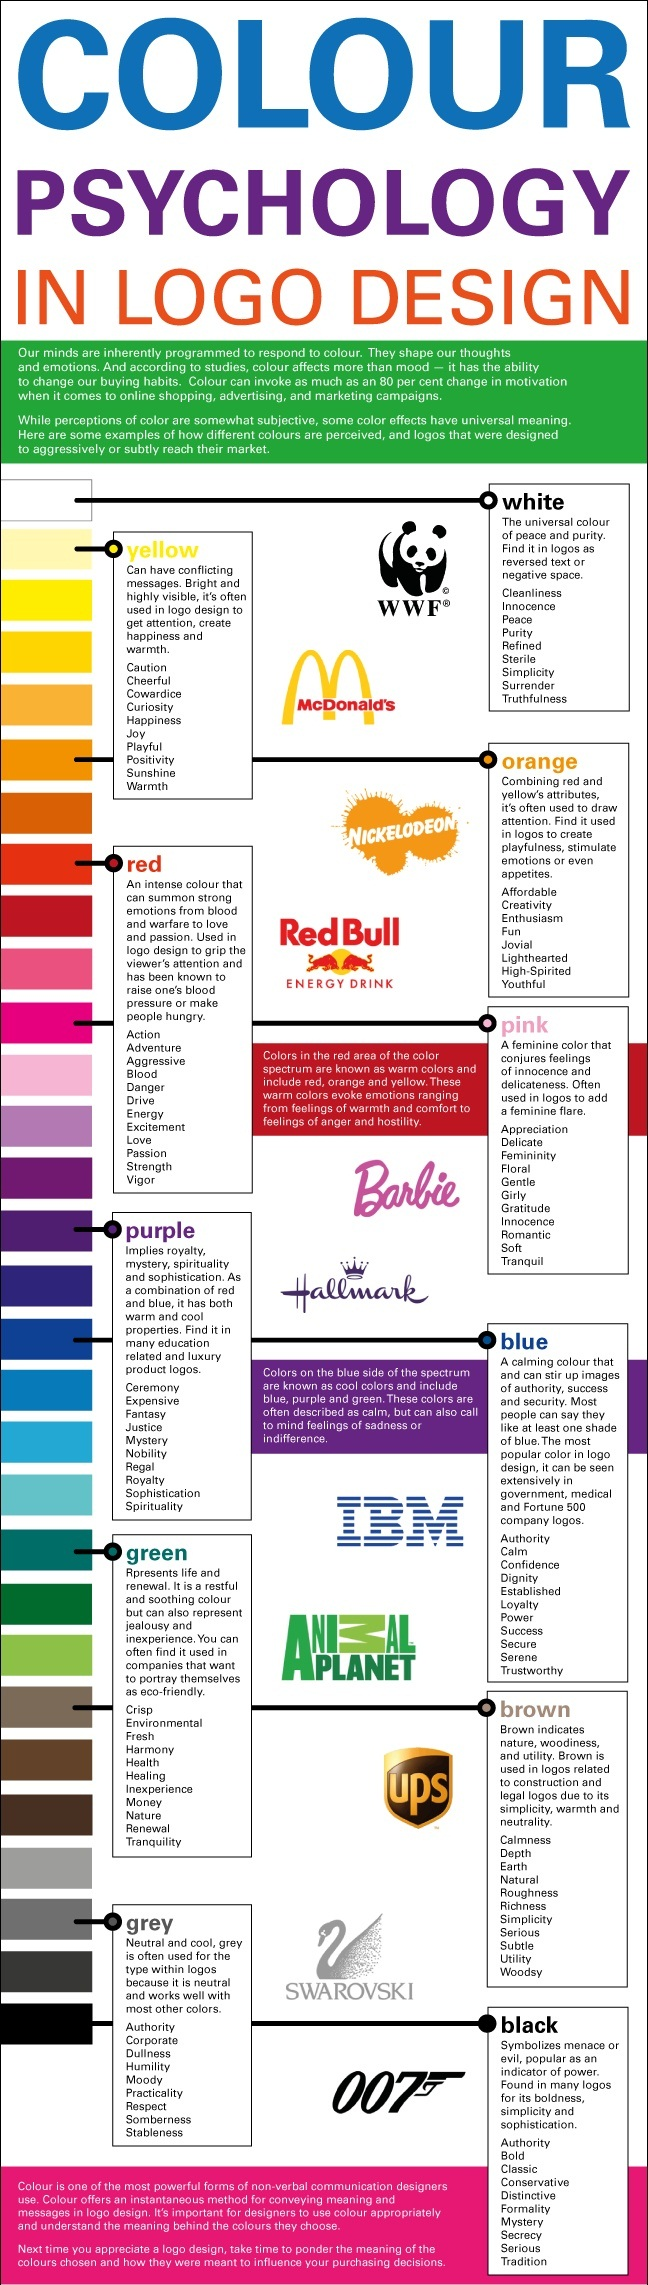 color psychology brand colors infographic